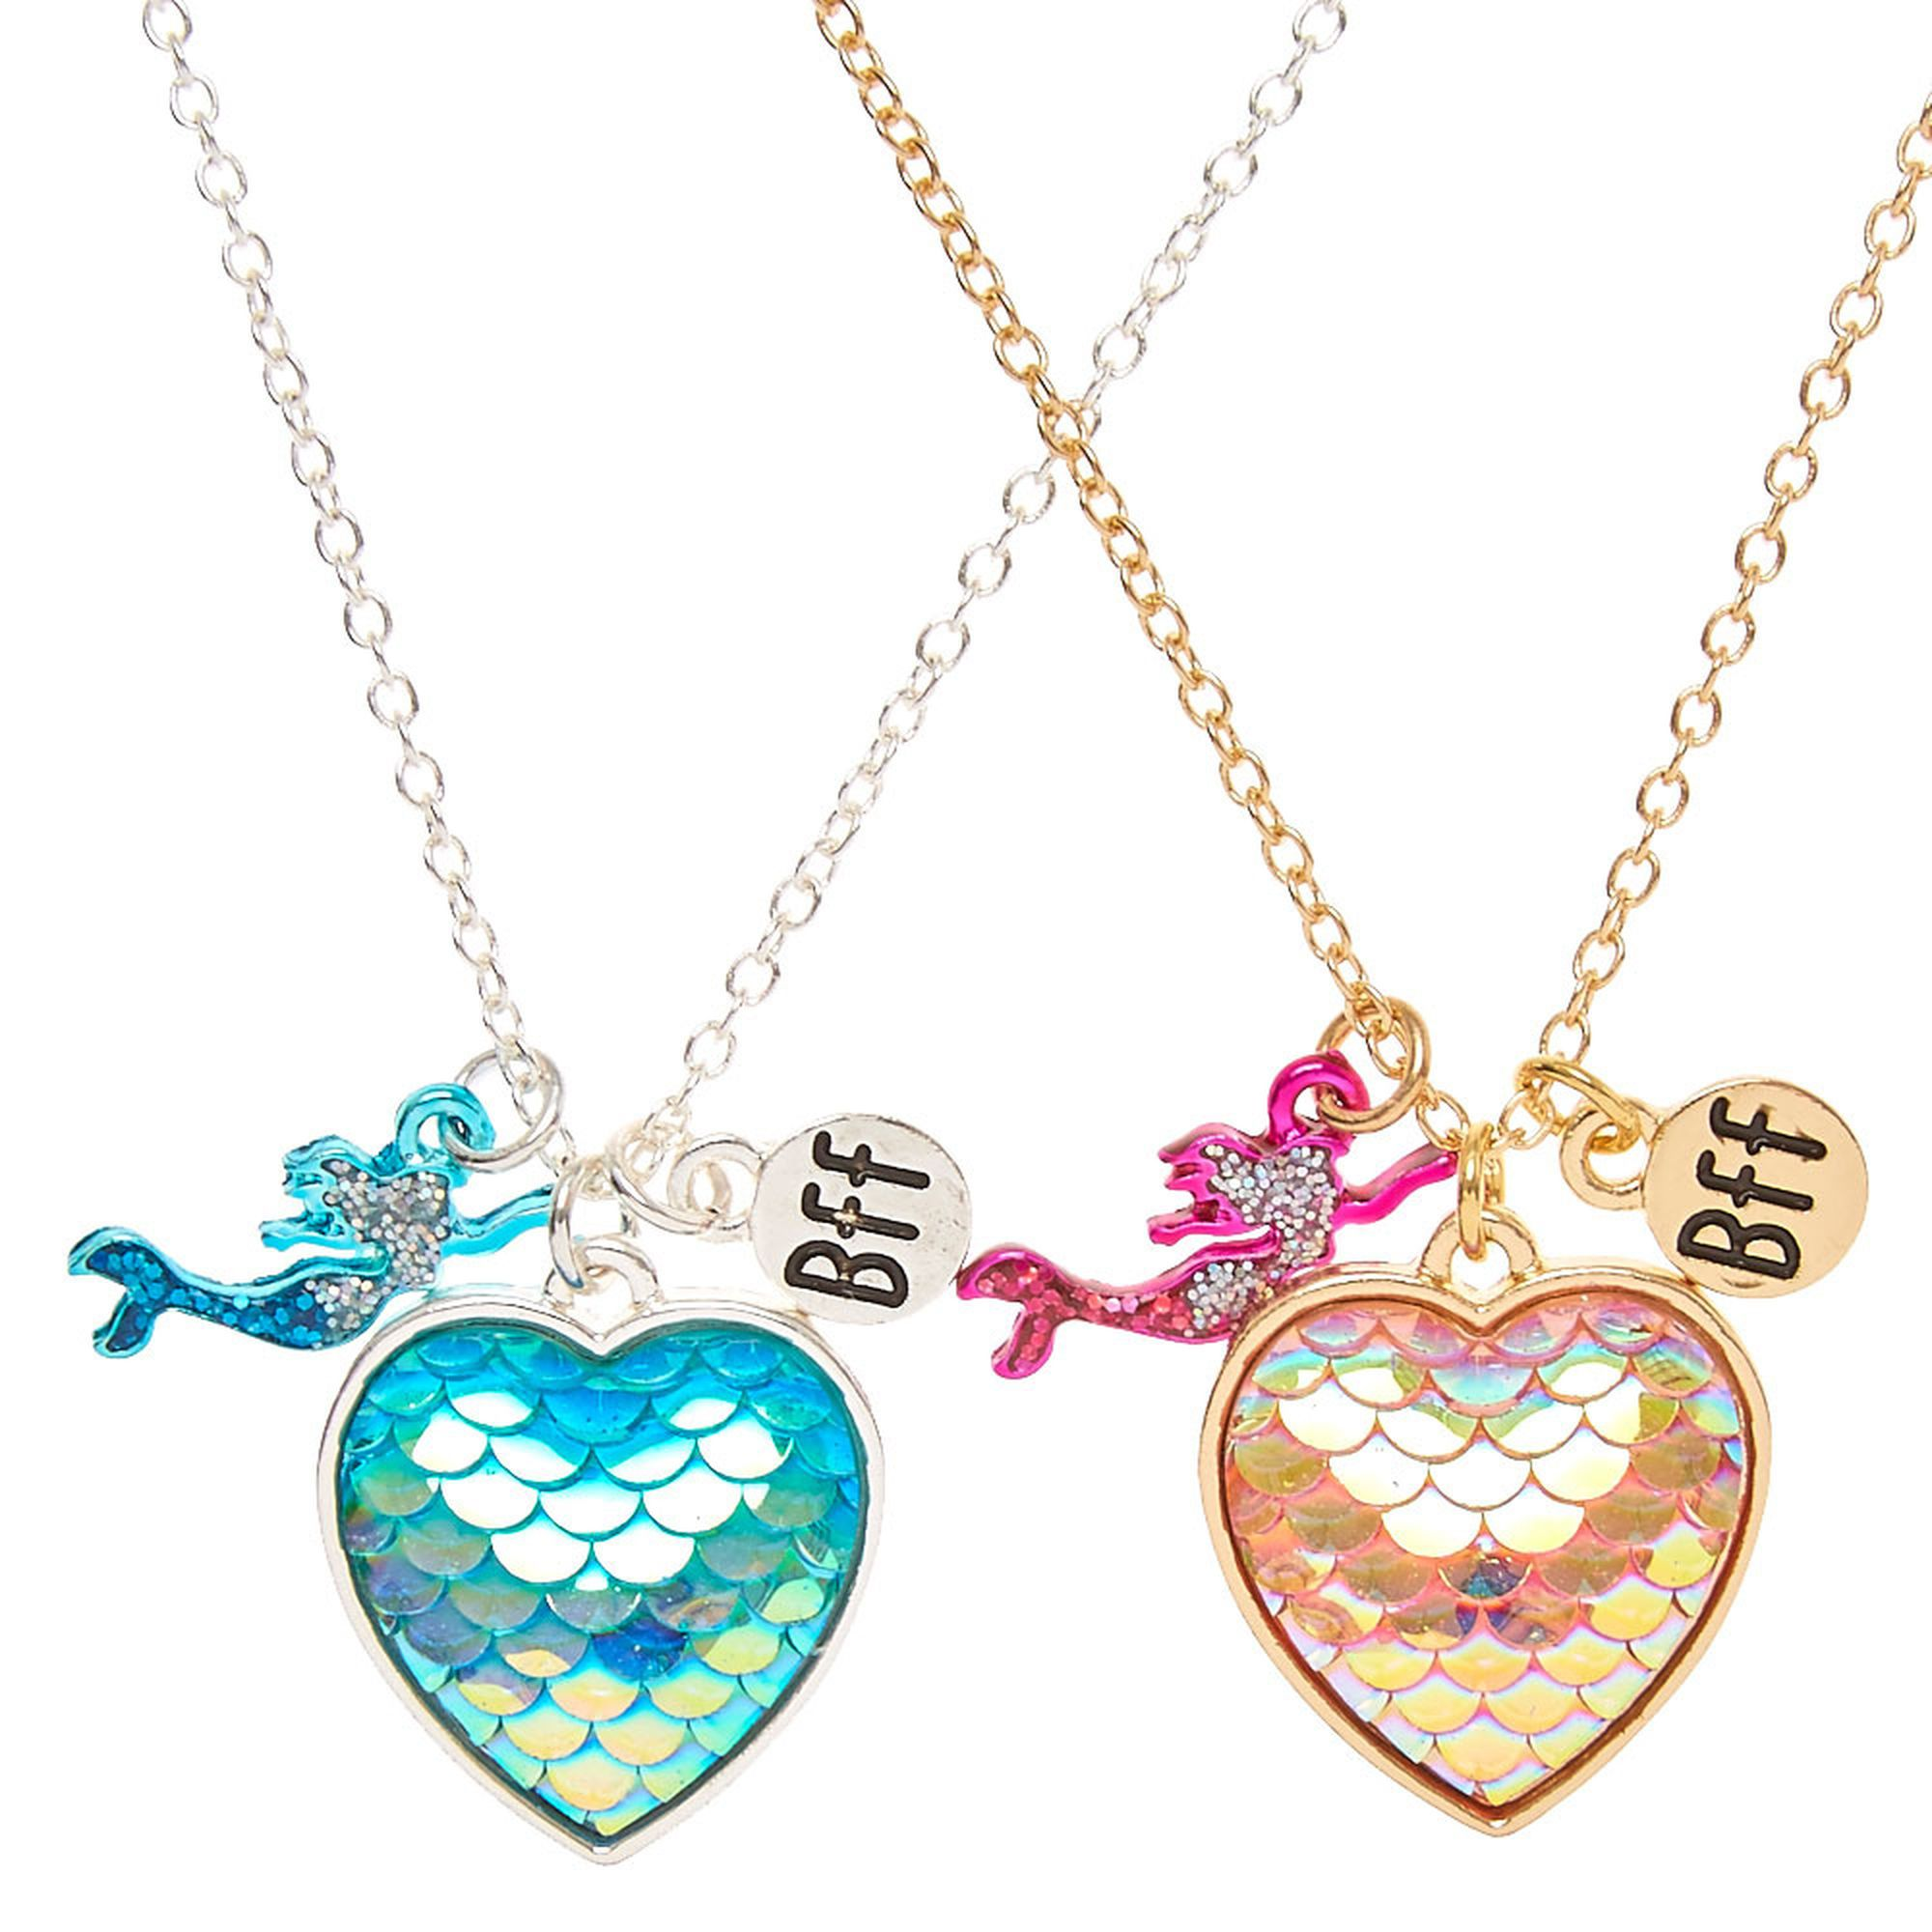 travel best west fddceede north necklace friend friendship lockets compass friends guidance south locket east